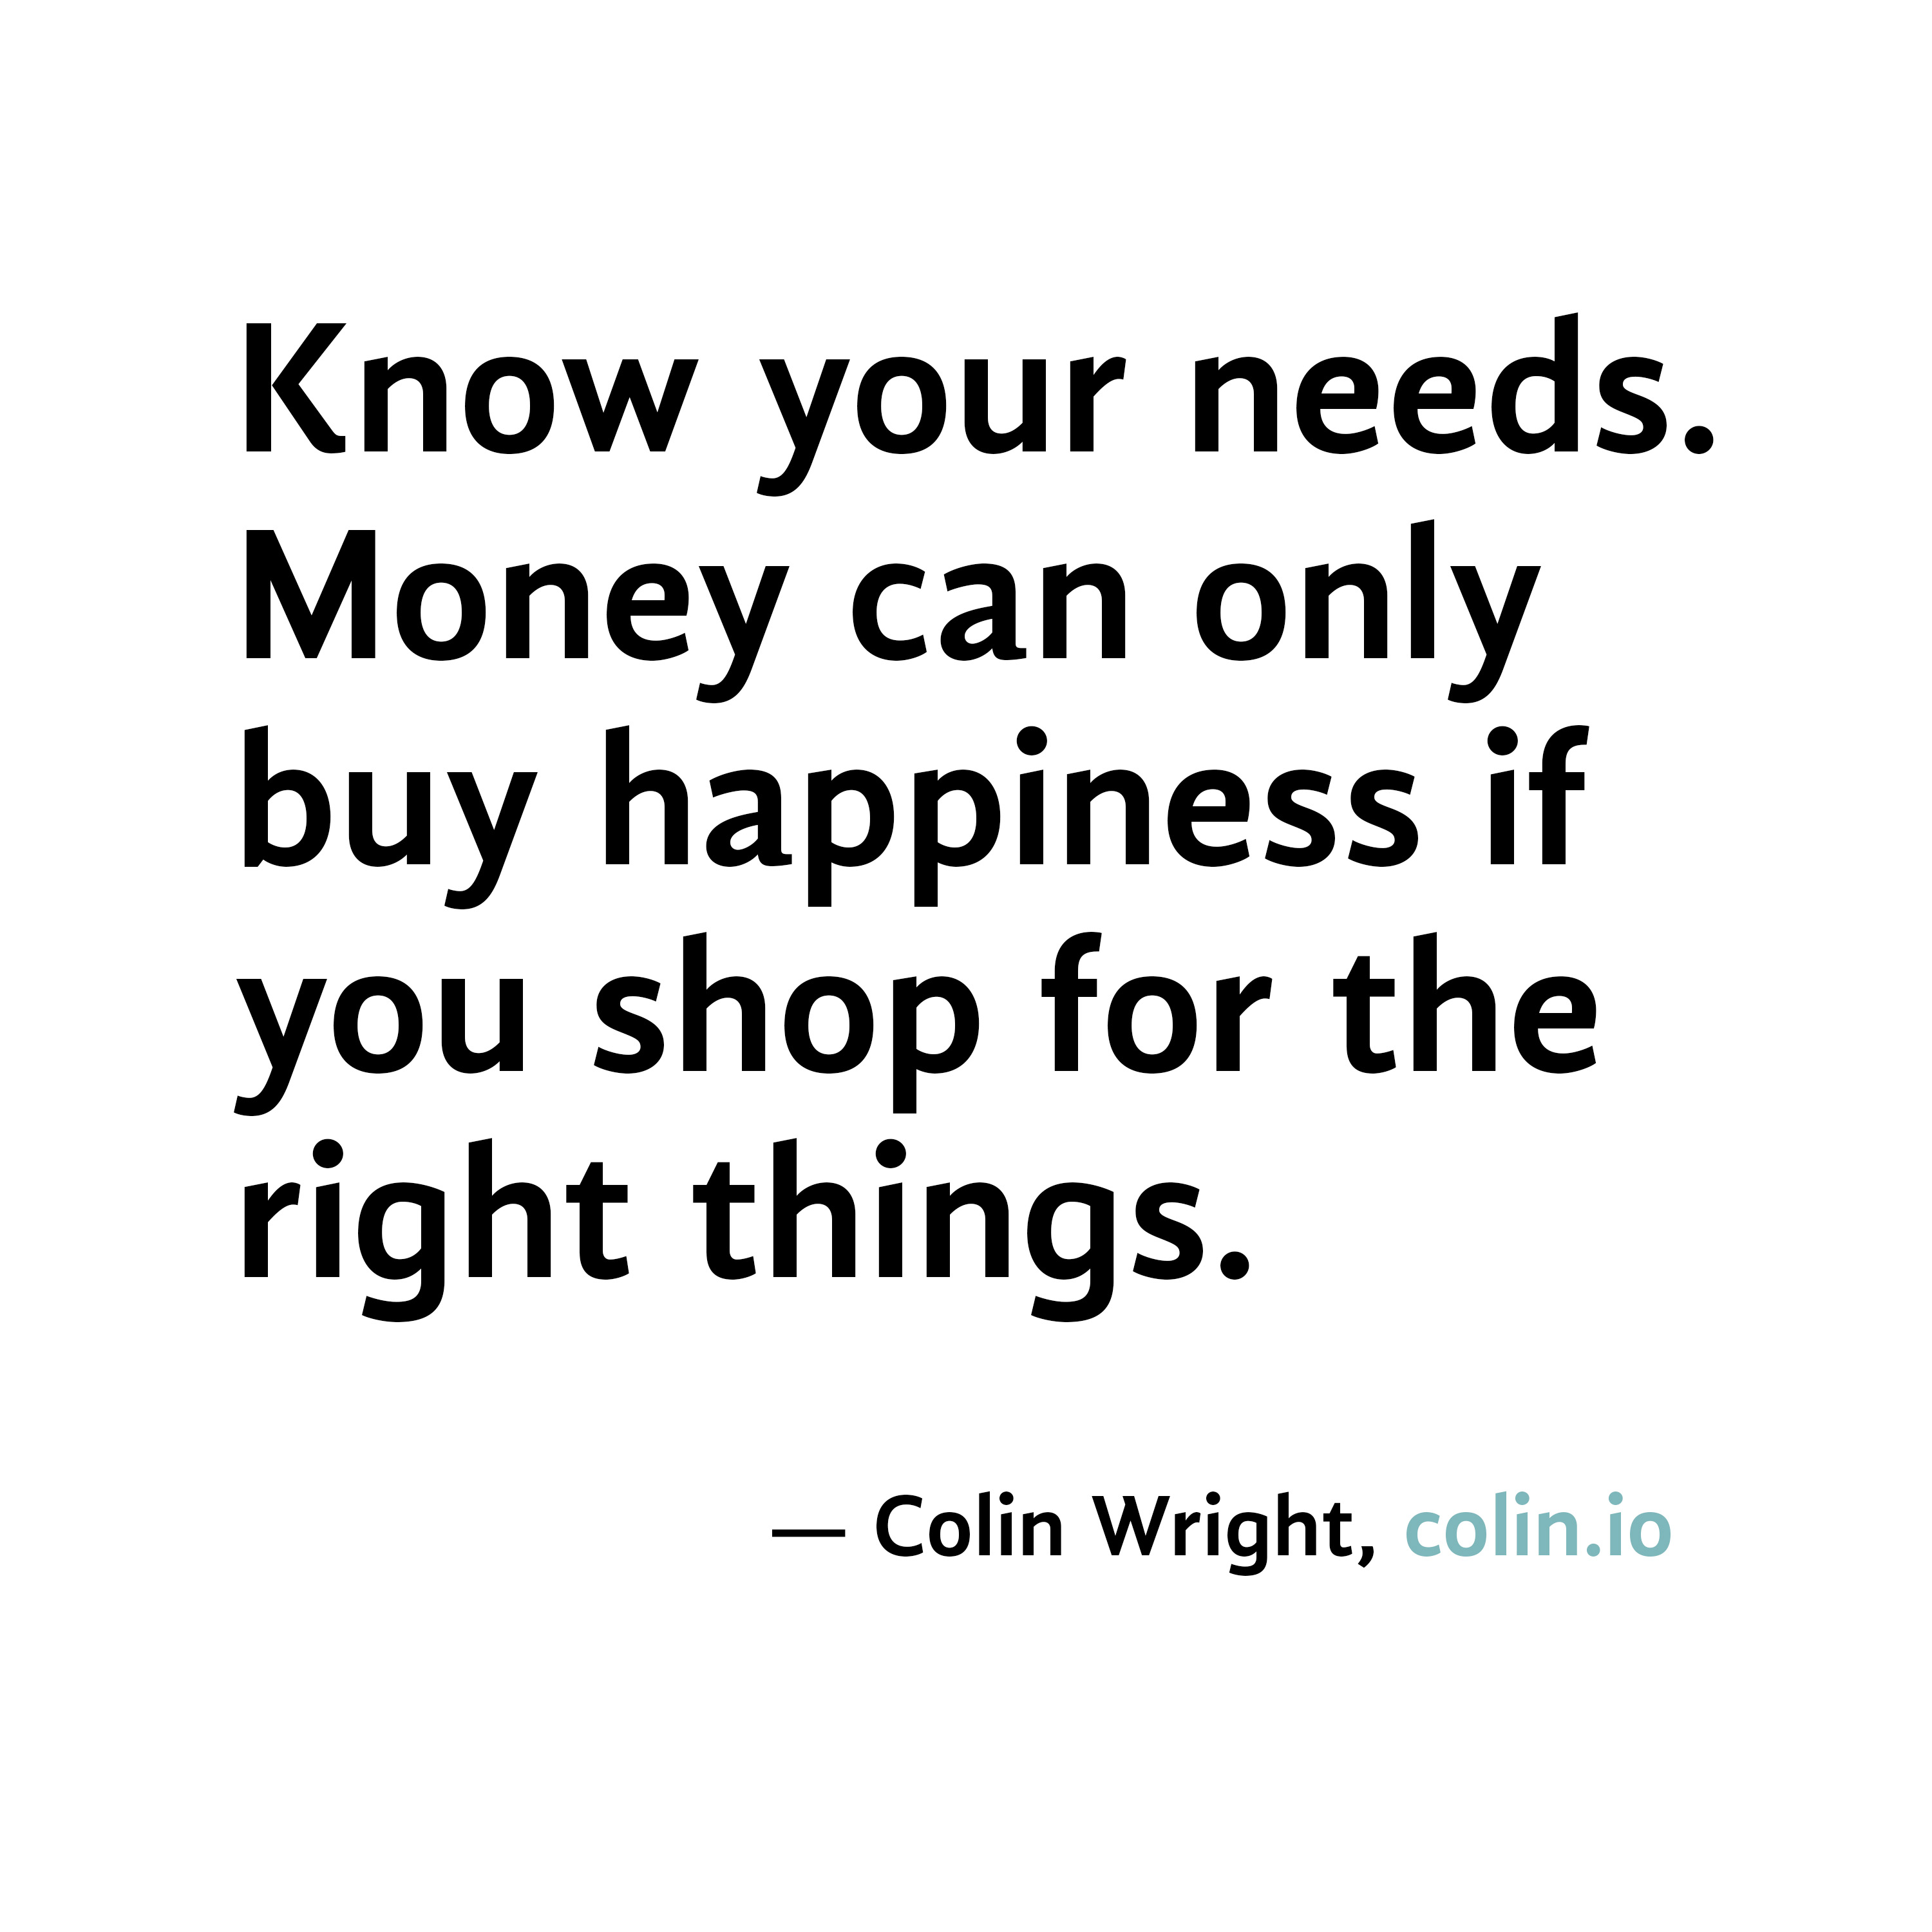 Quotes About Money Not Buying Happiness: Quotes About Money Buying Happiness (39 Quotes